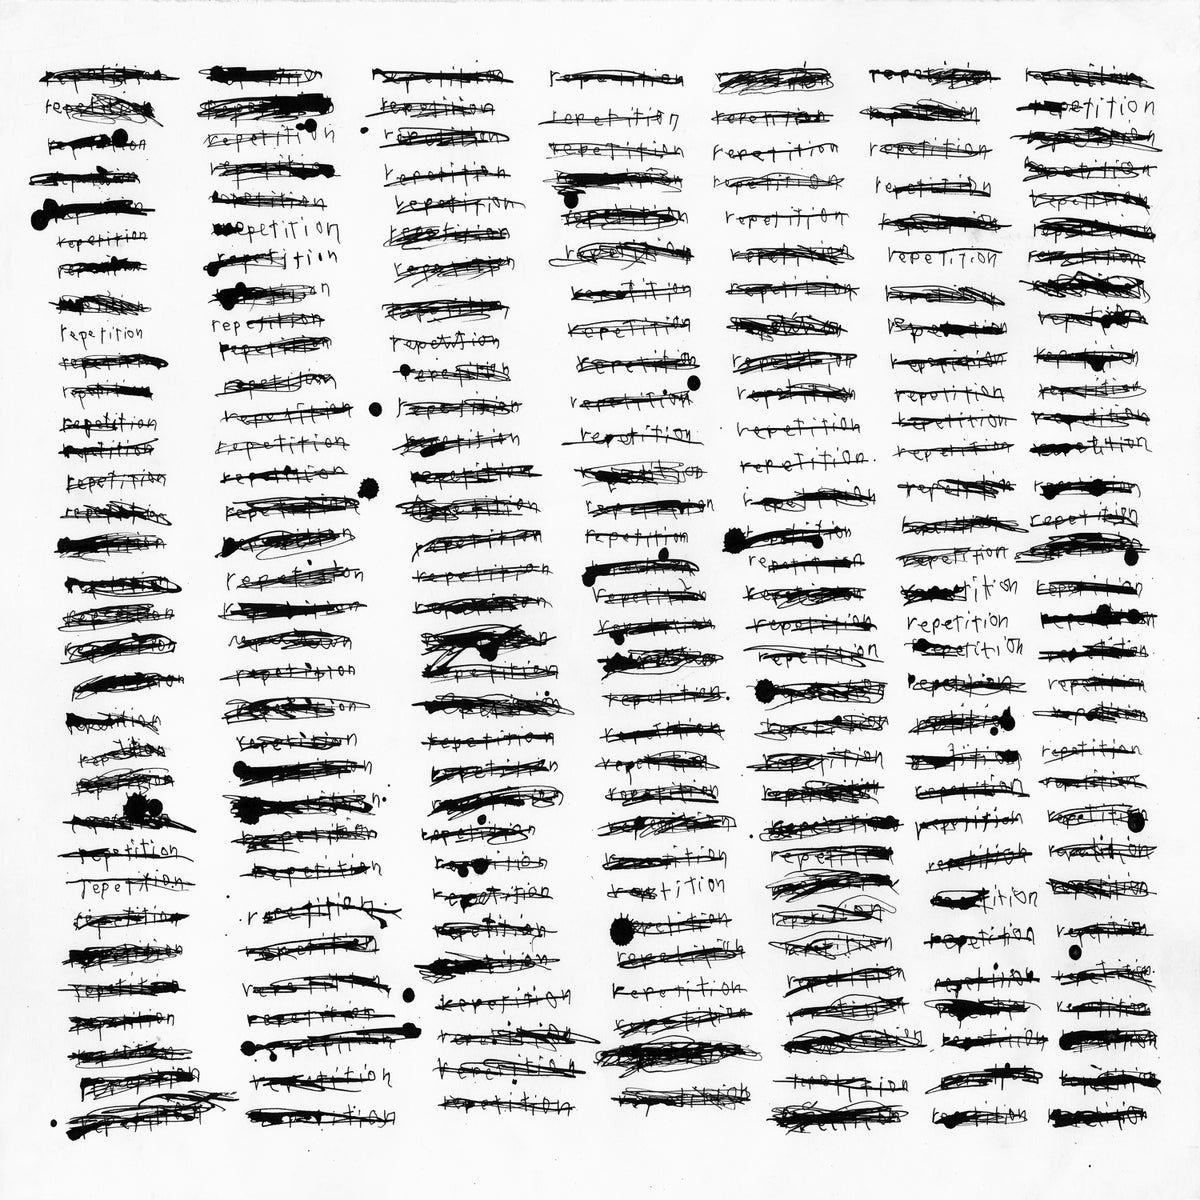 Image of Repetition